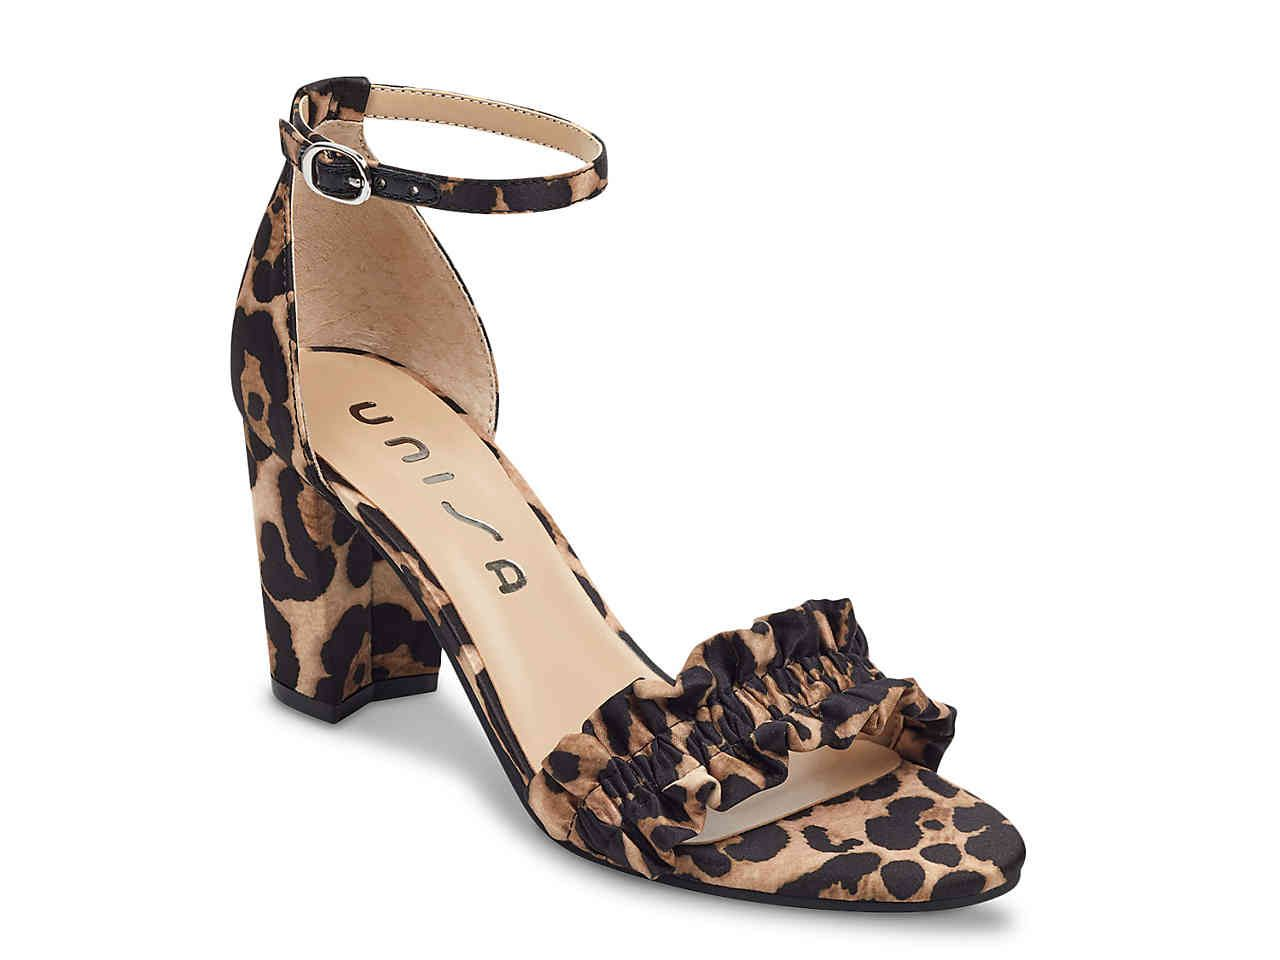 Unisa Diara Sandal Women S Shoes Dsw With Images Heels Ankle Strap Heels Ankle Straps